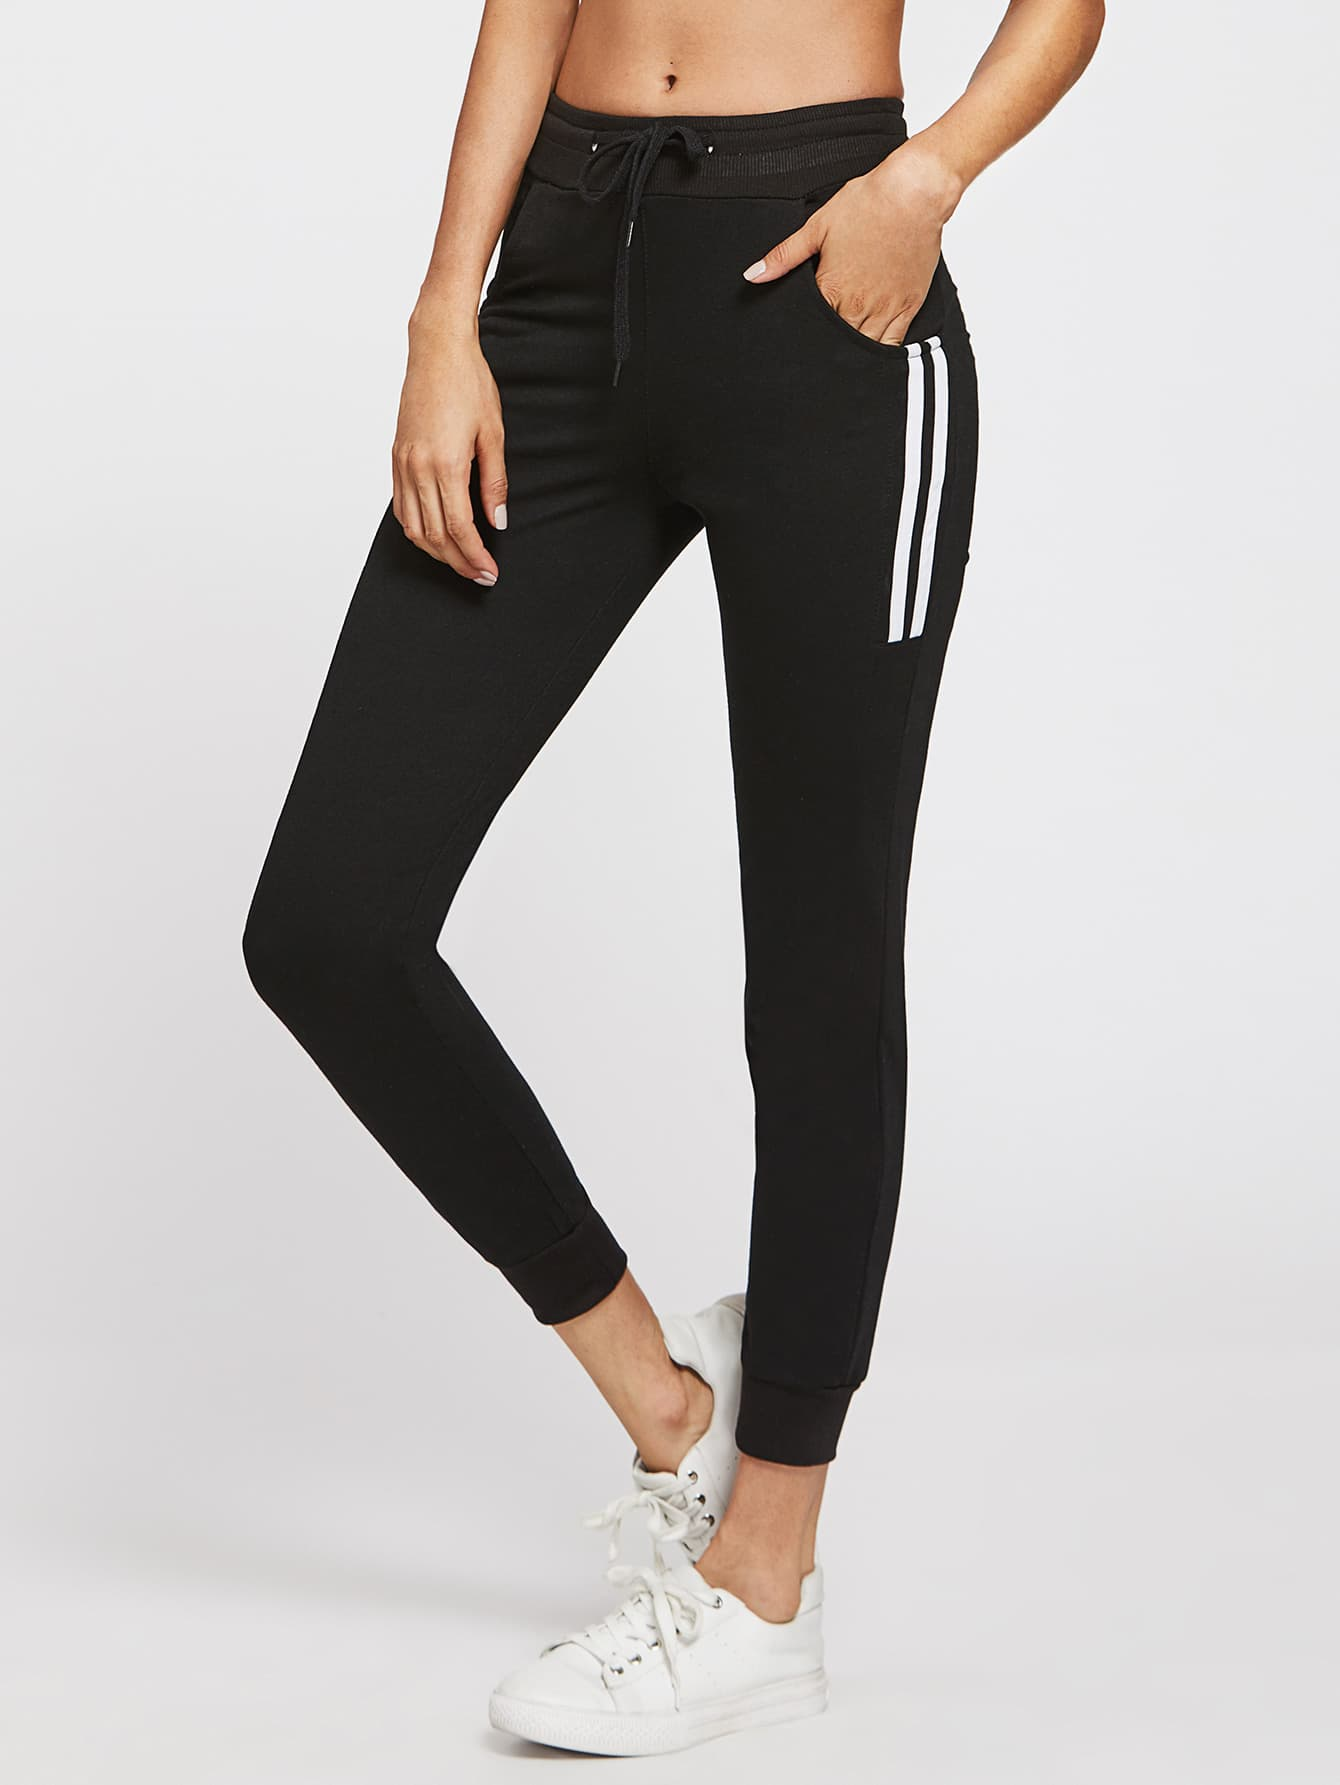 Image of Side Striped Drawstring Waist Pants